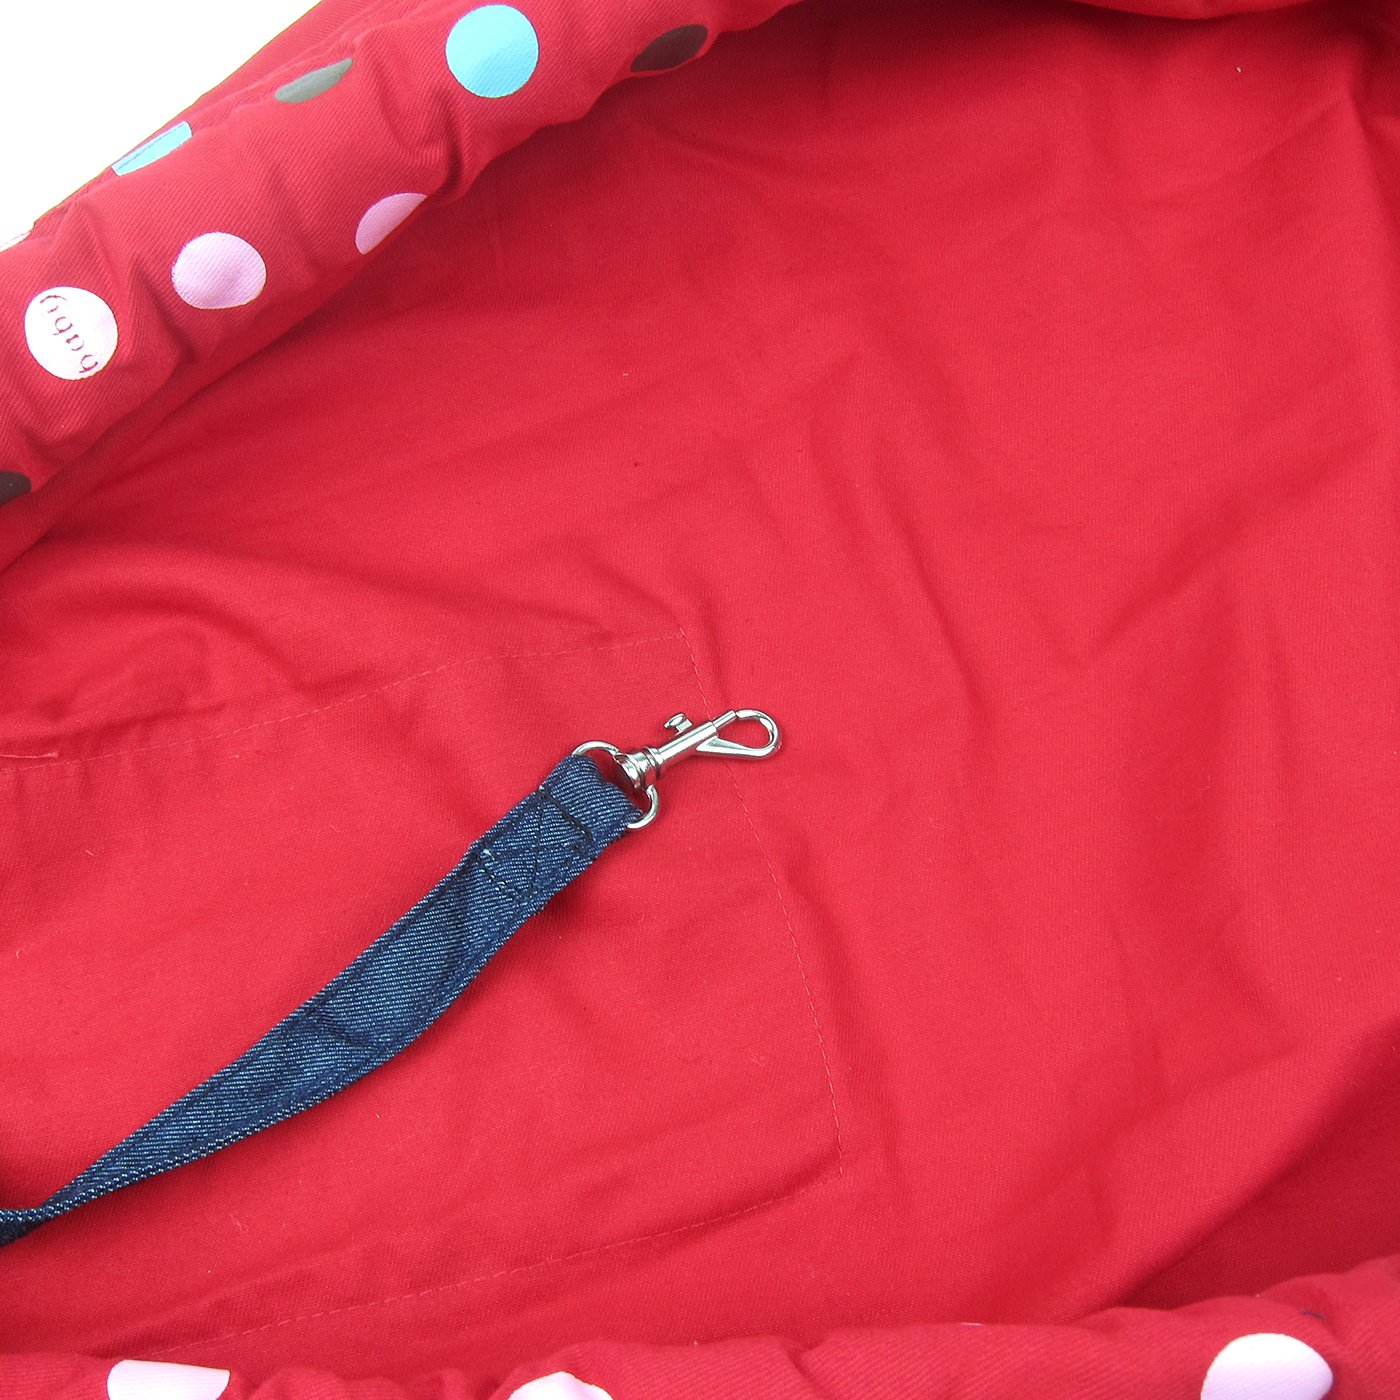 Alfie Pet by Petoga Couture - Hollis Pet Sling Carrier with Adjustable Strap - Color: Red by Alfie (Image #5)